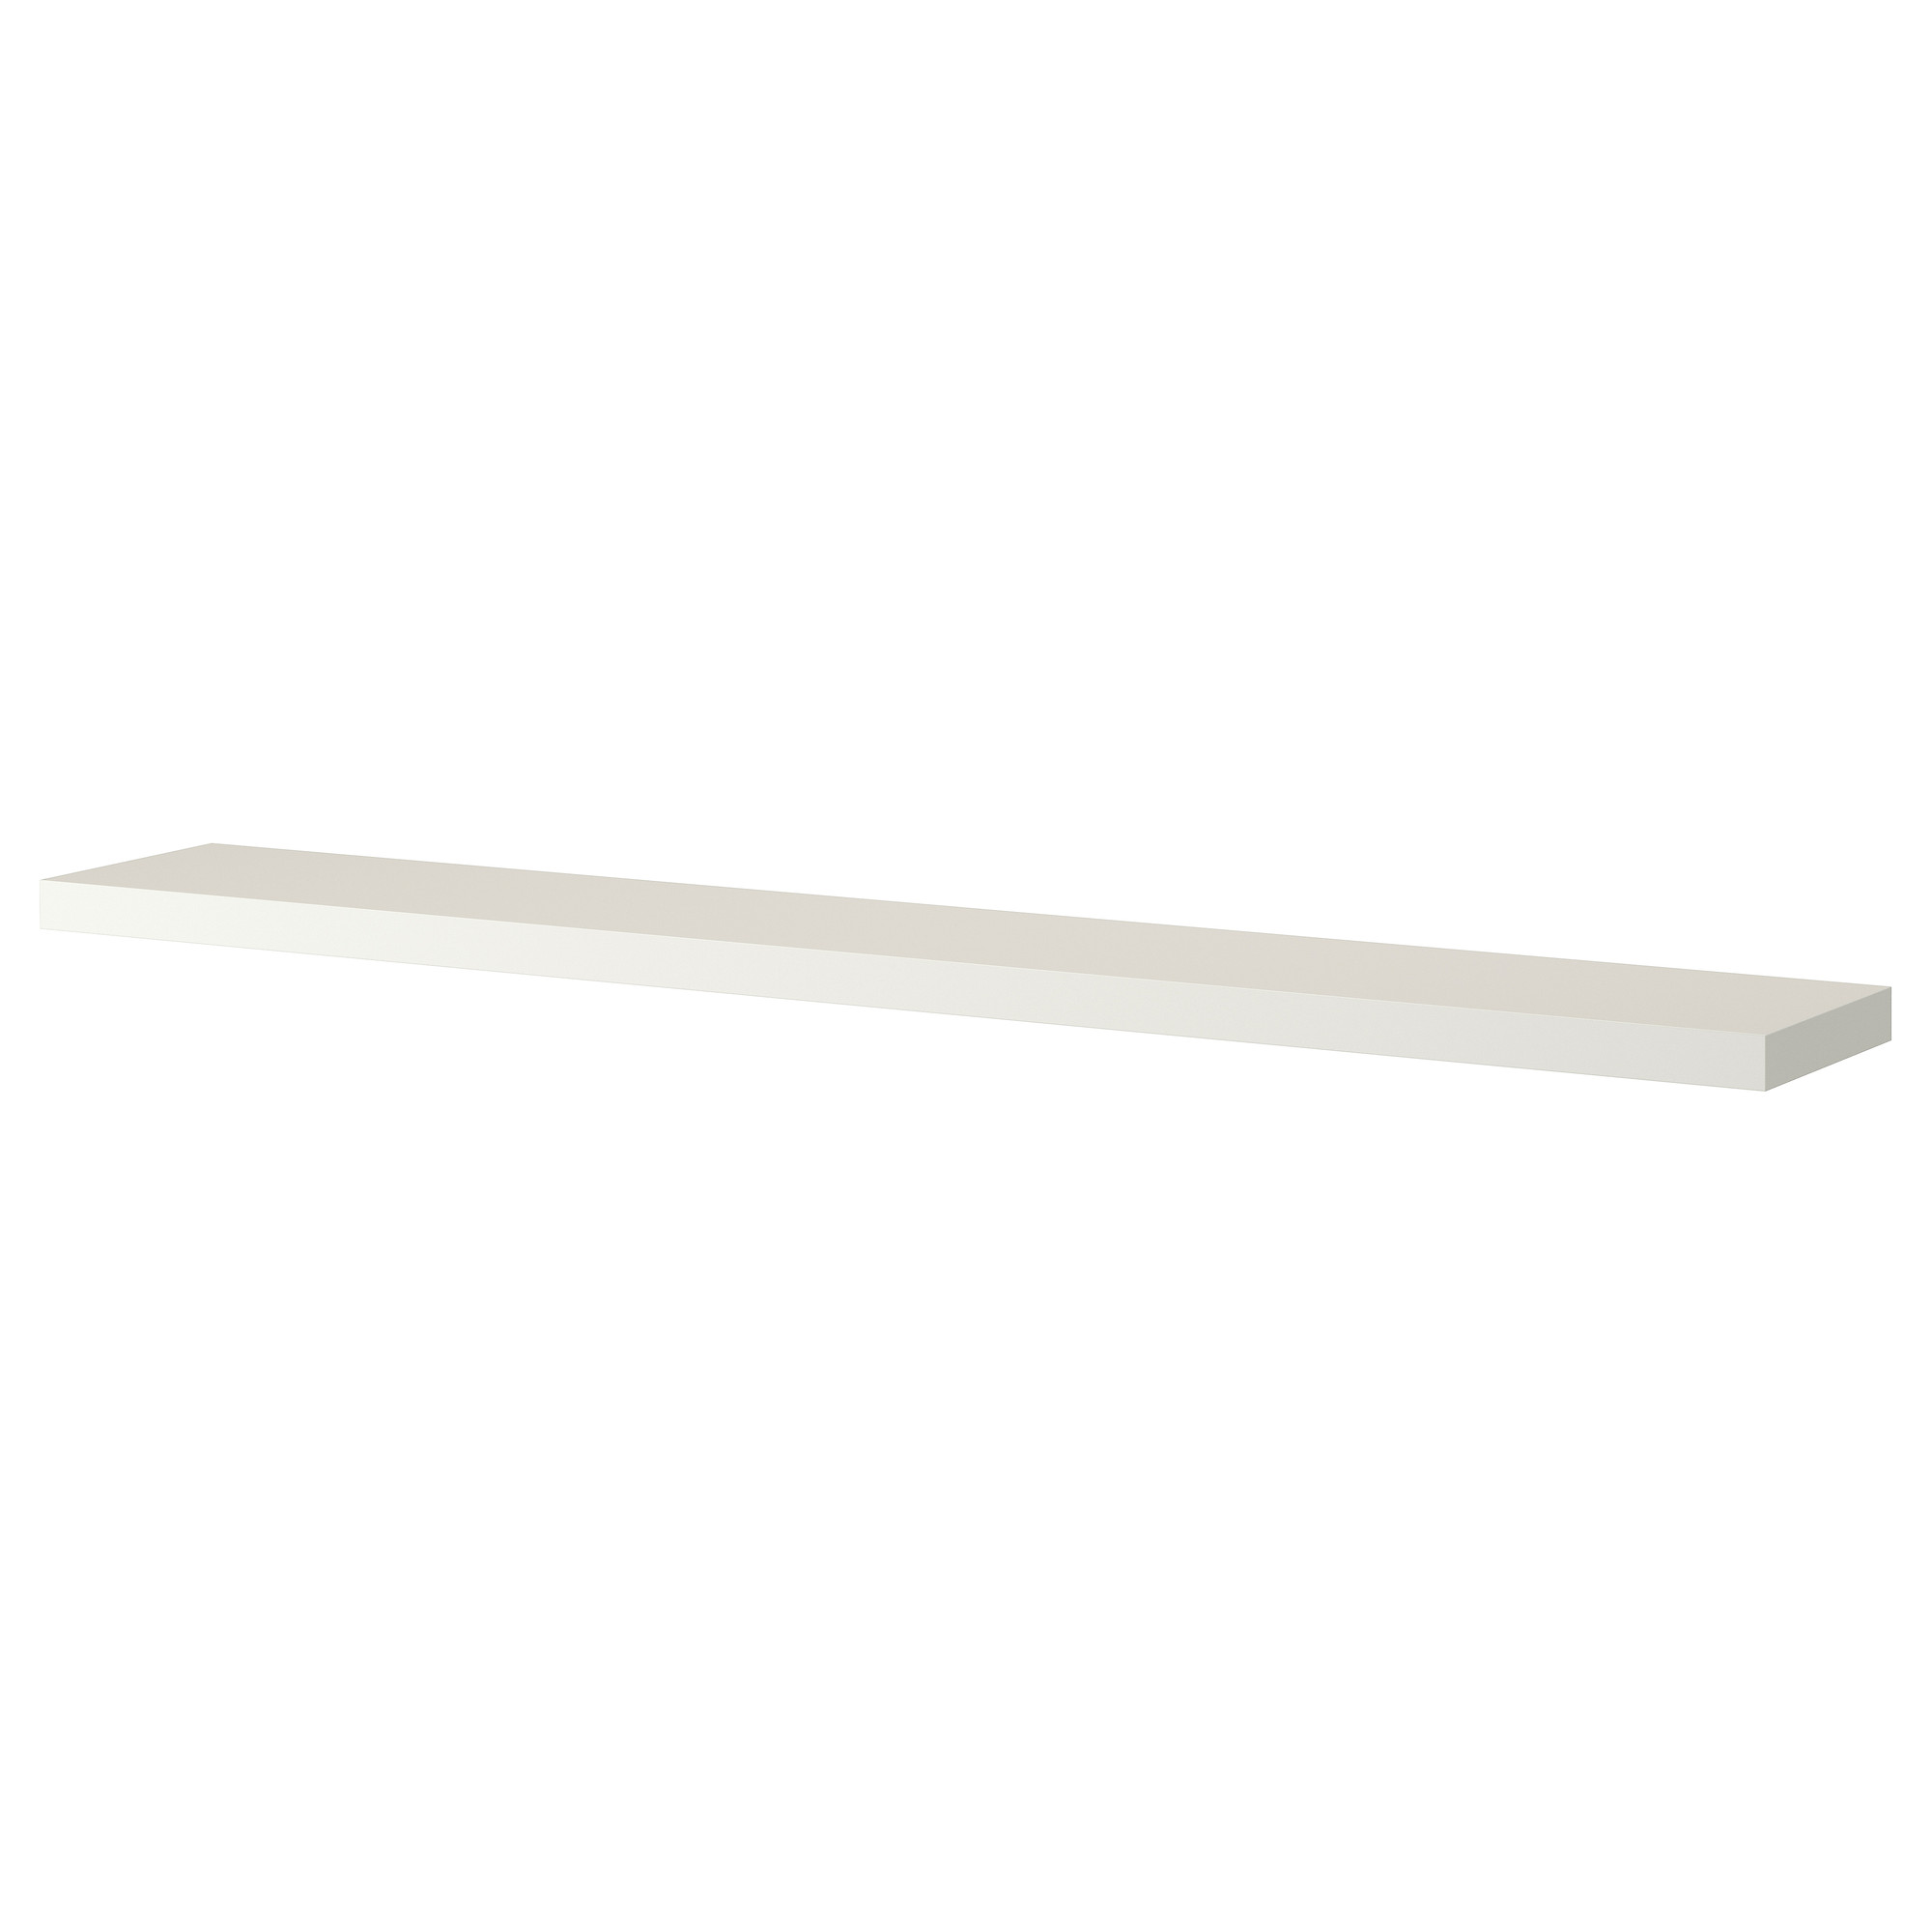 lack wall shelf white shelves walls and room ikea black floating concealed mounting product dimensions length depth thickness with led lights what type underlayment for vinyl